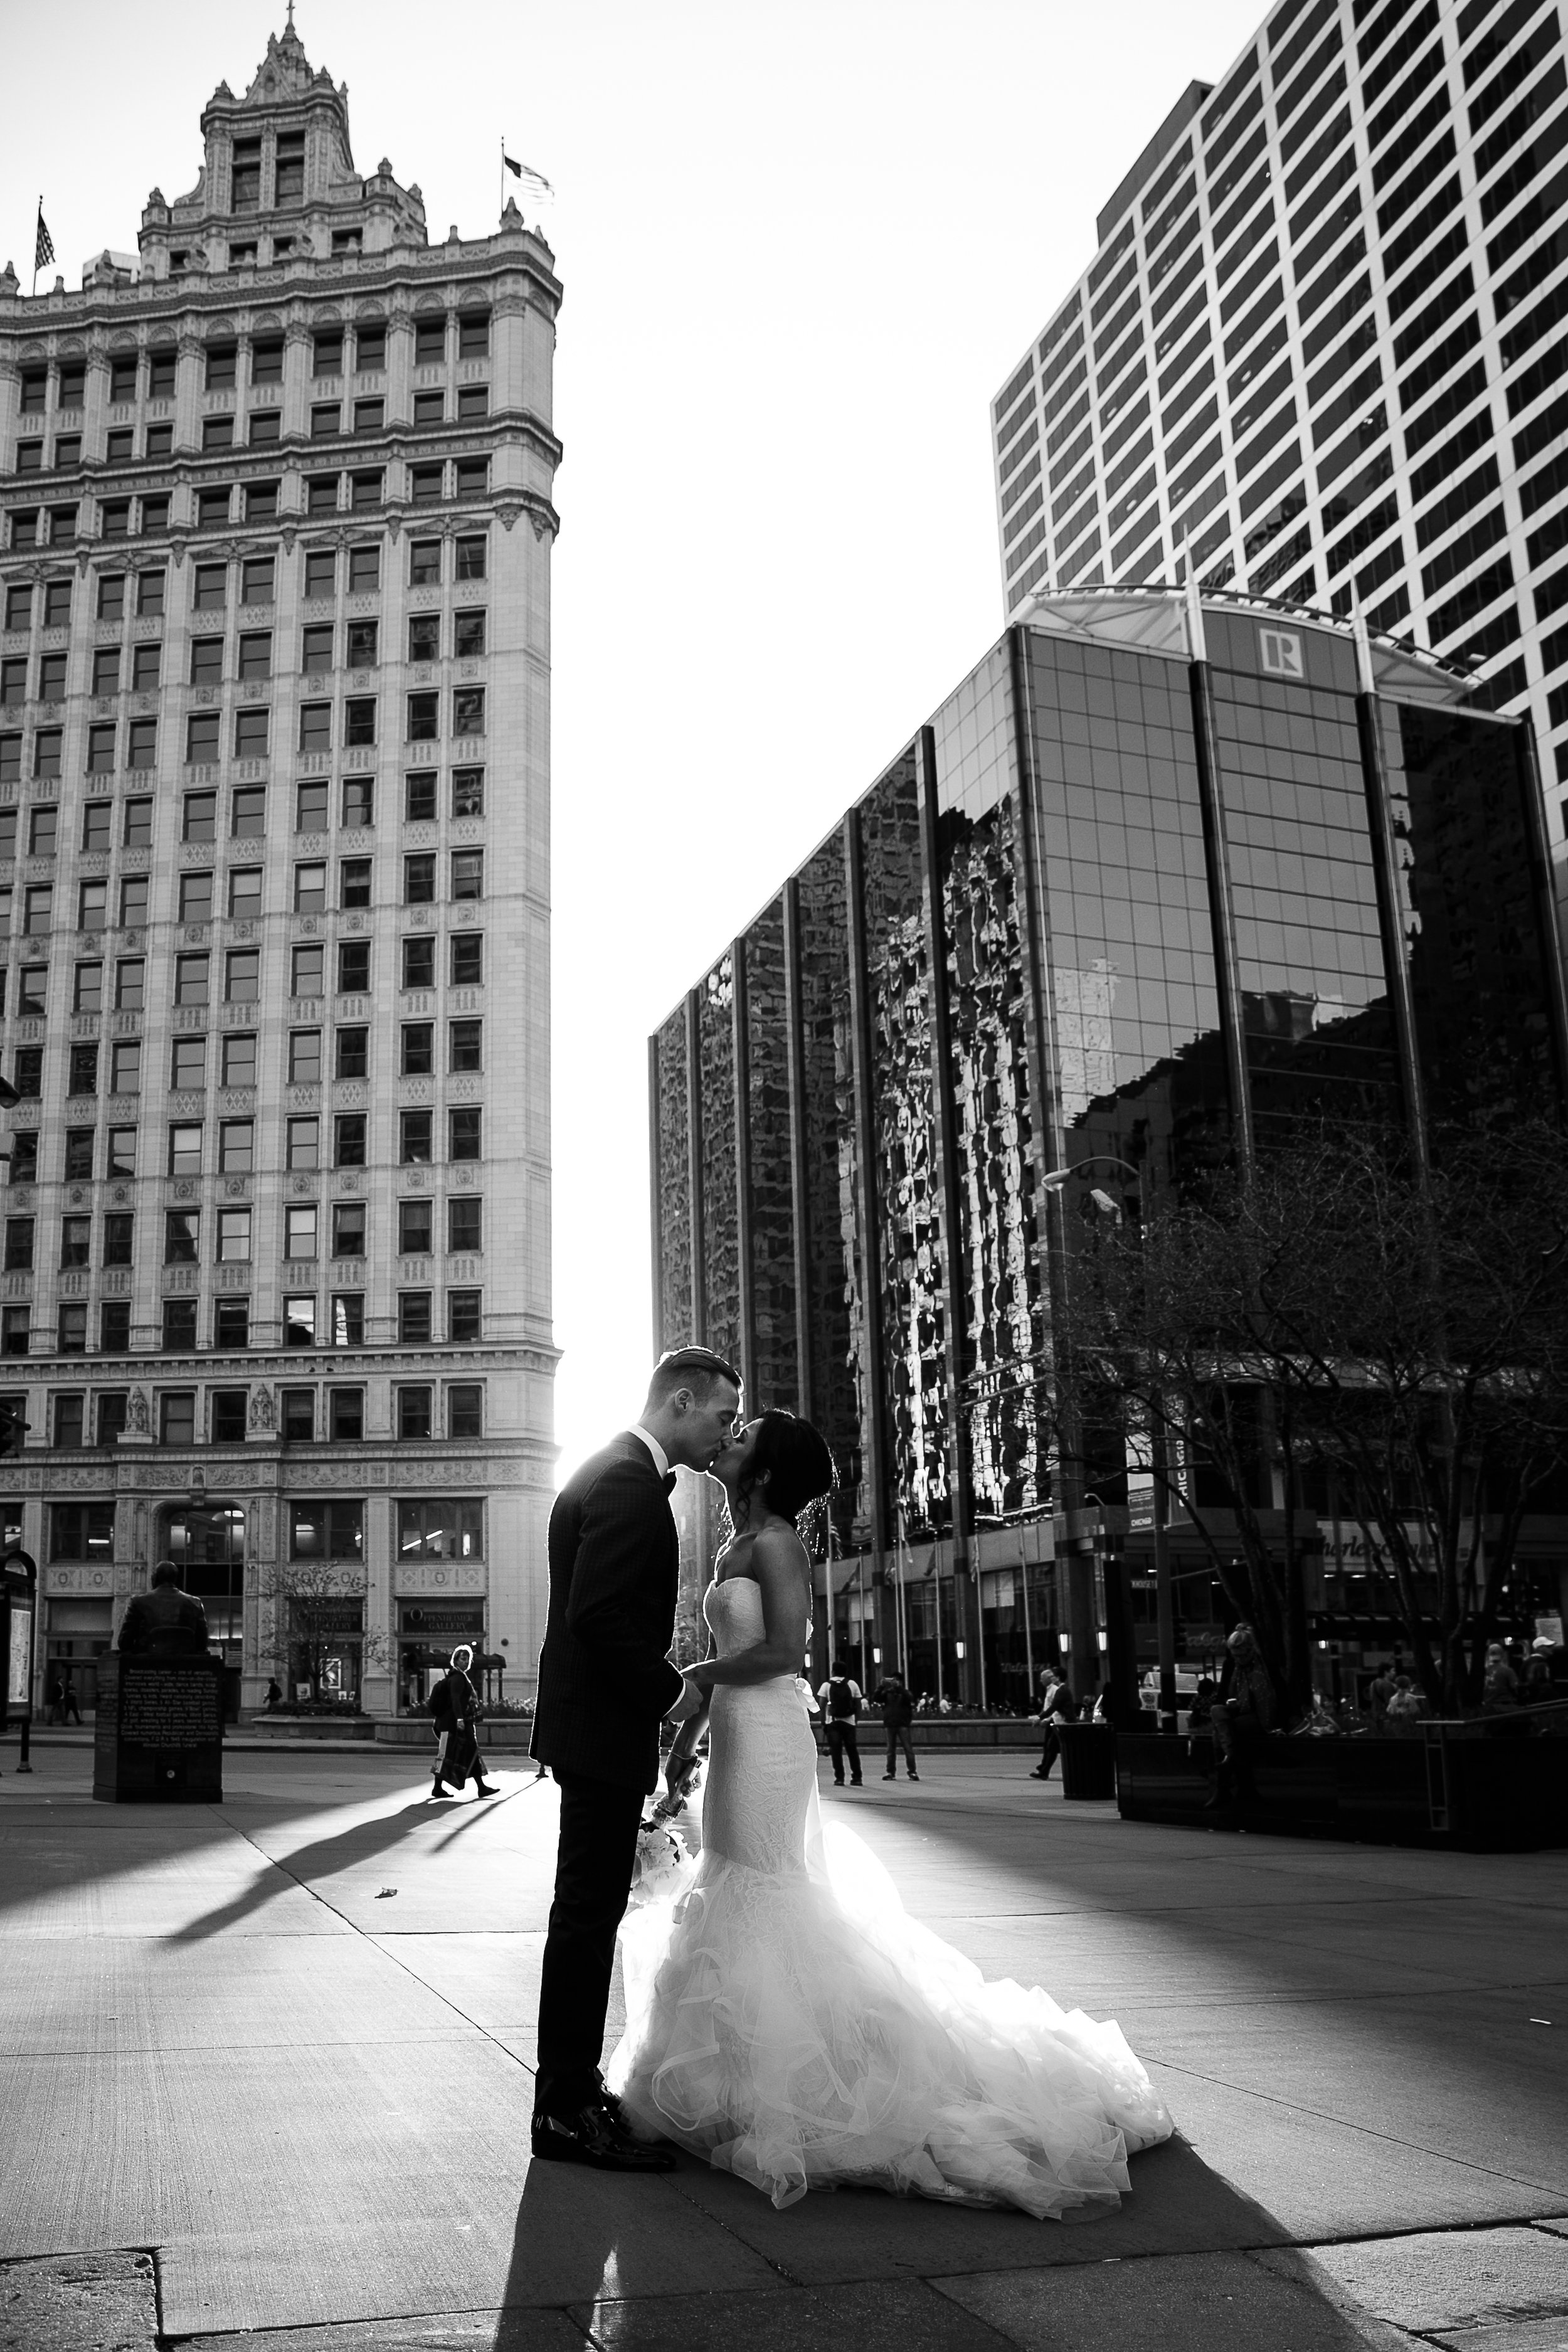 Iconic Chicago architecture is the backdrop for this editorial wedding portrait on Michigan Ave